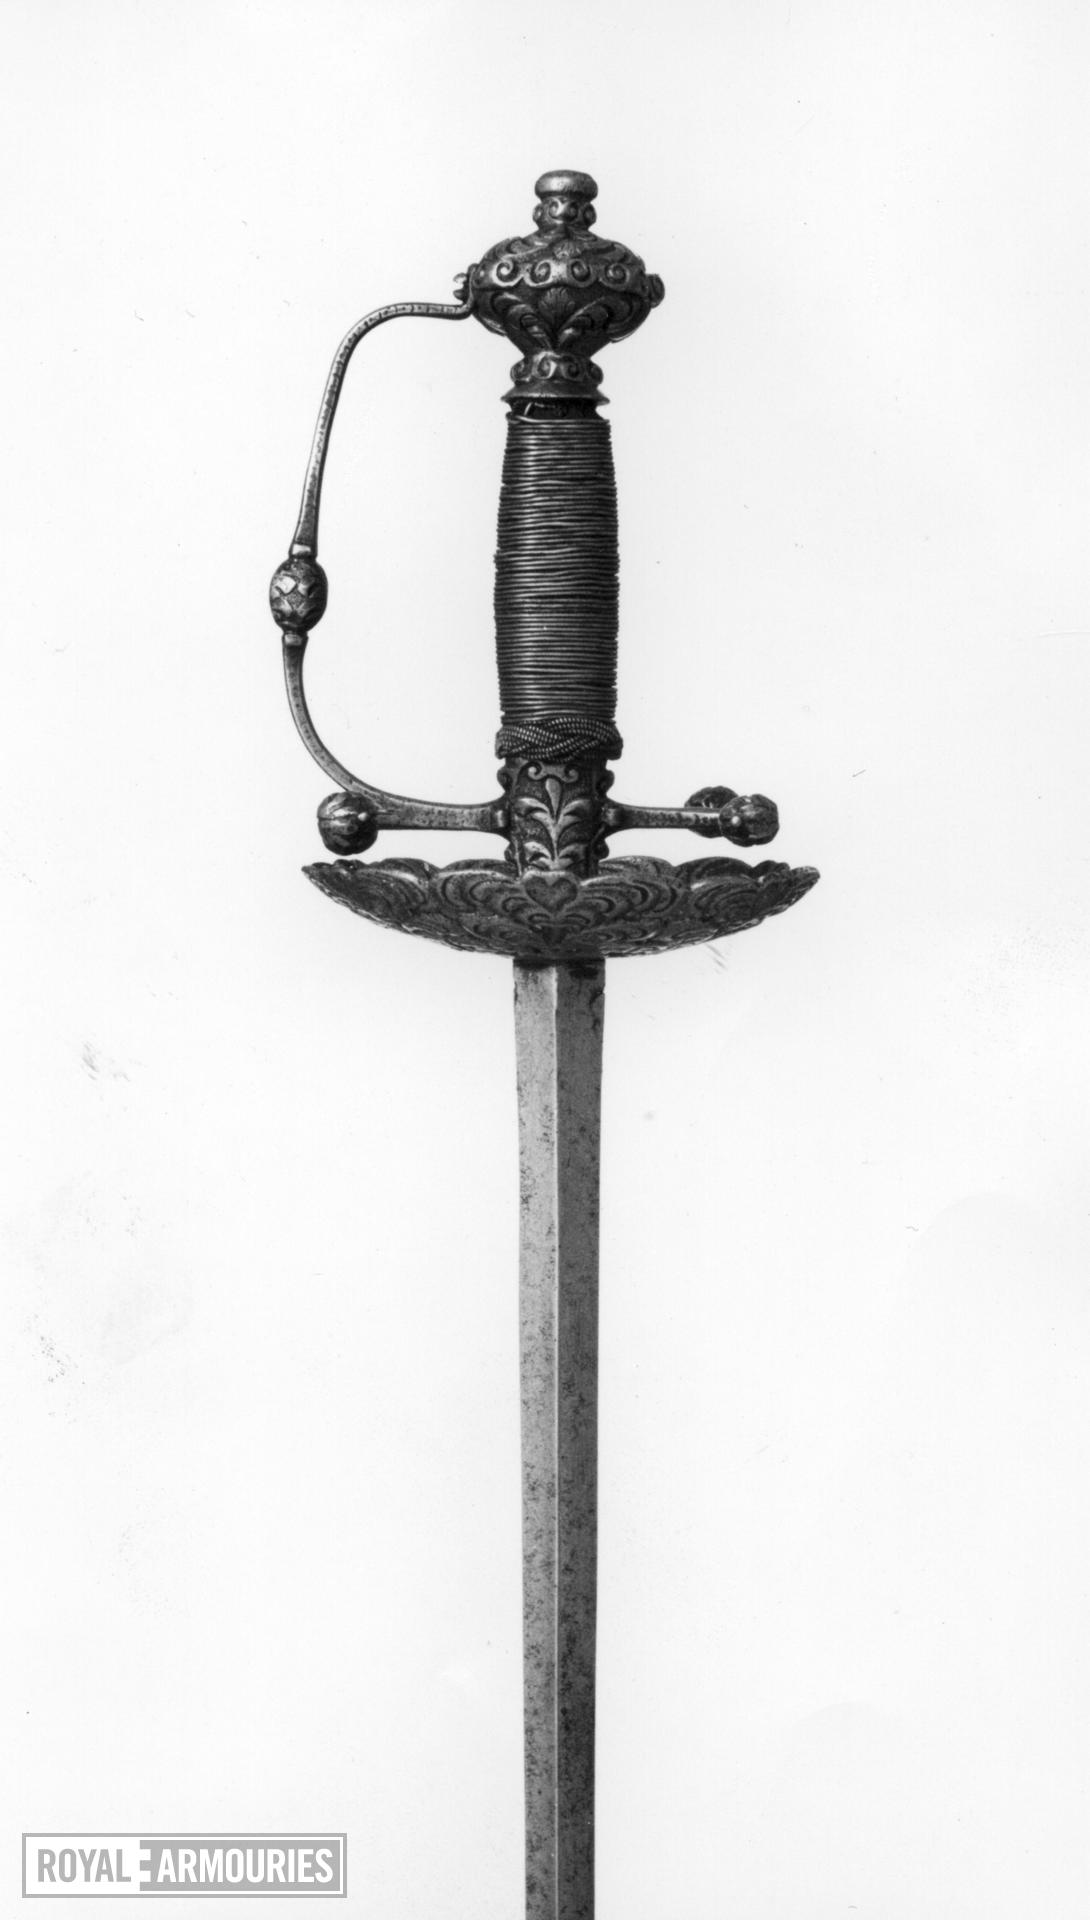 Sword - Rapier of cup-hilt form.